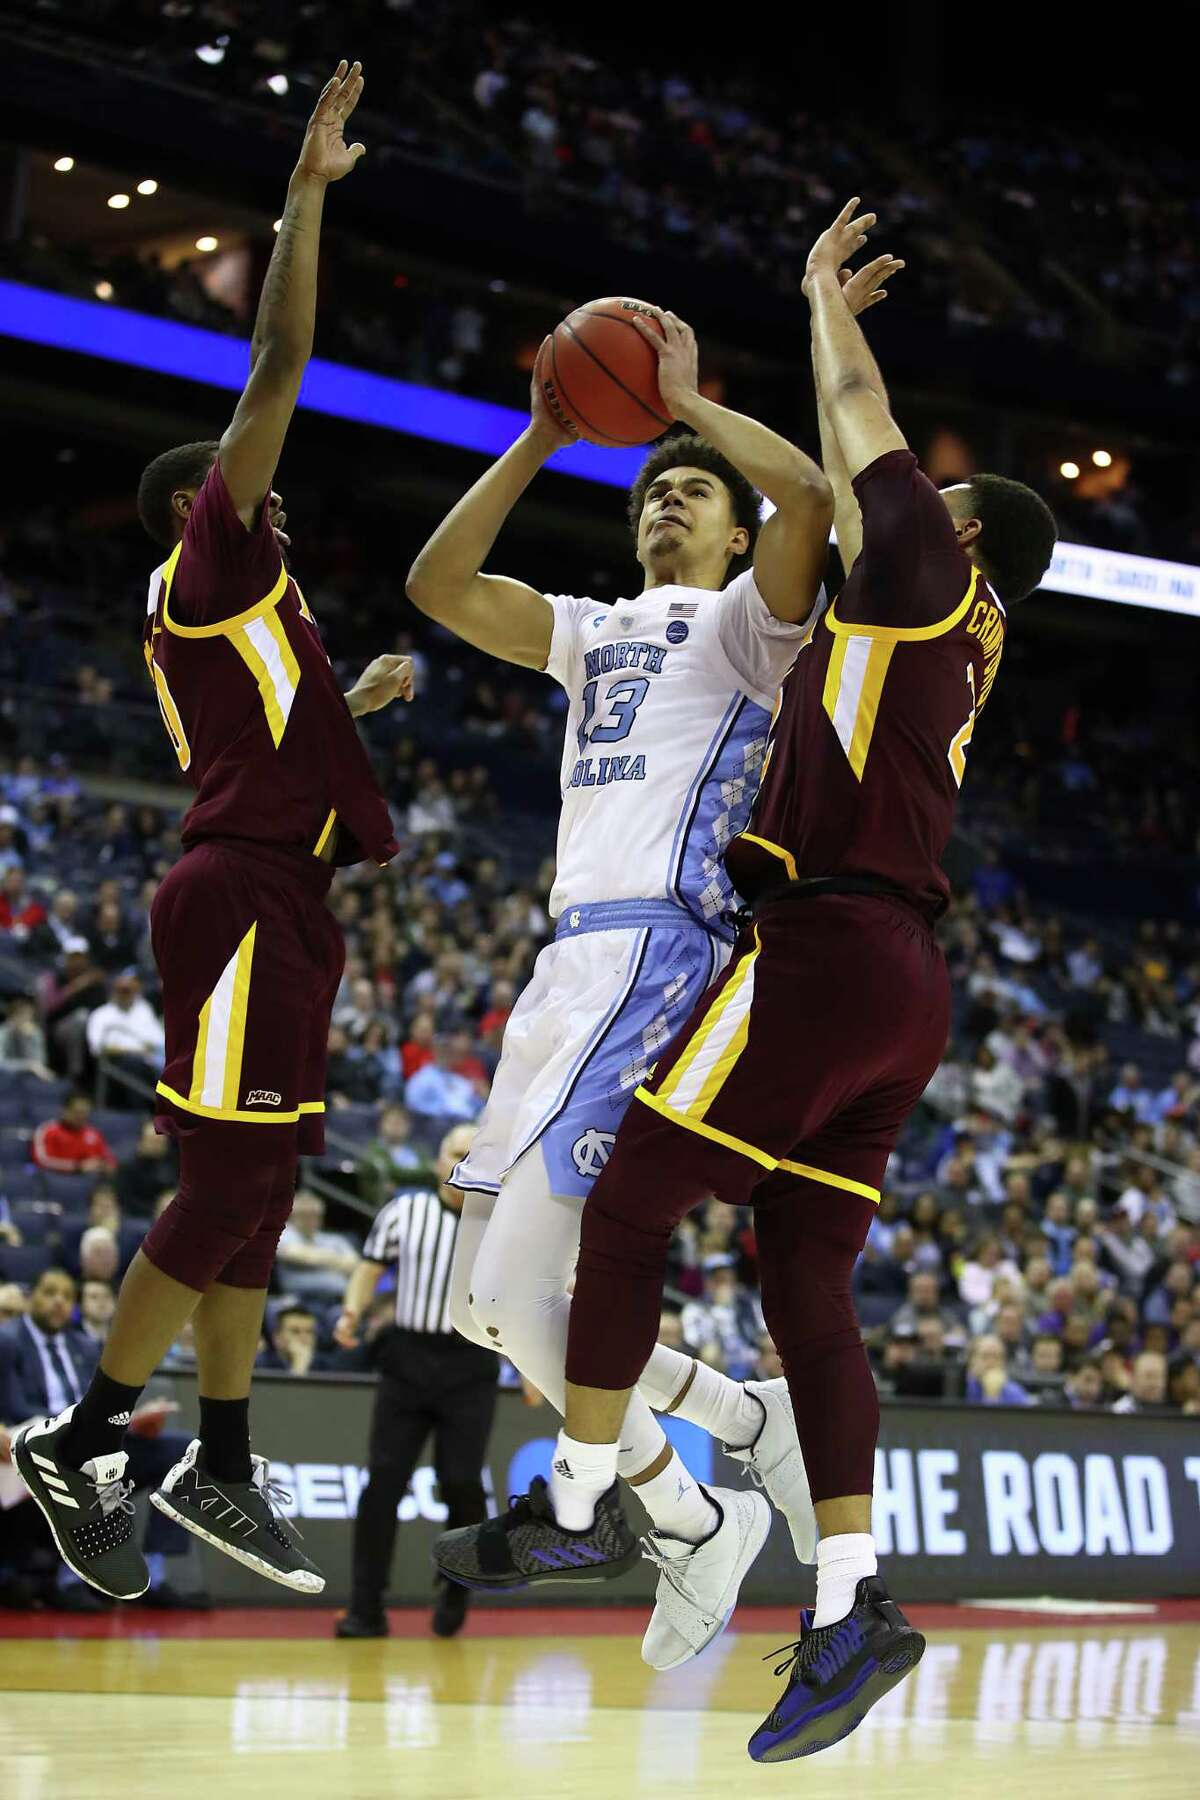 Cameron Johnson College: North Carolina Ht: 6-9 Wt: 210 Pos: SG/SFAge: 23 As far as pure shooters are concerned, few players in the draft field can match North Carolina forward Cameron Johnson. Read more about him here.